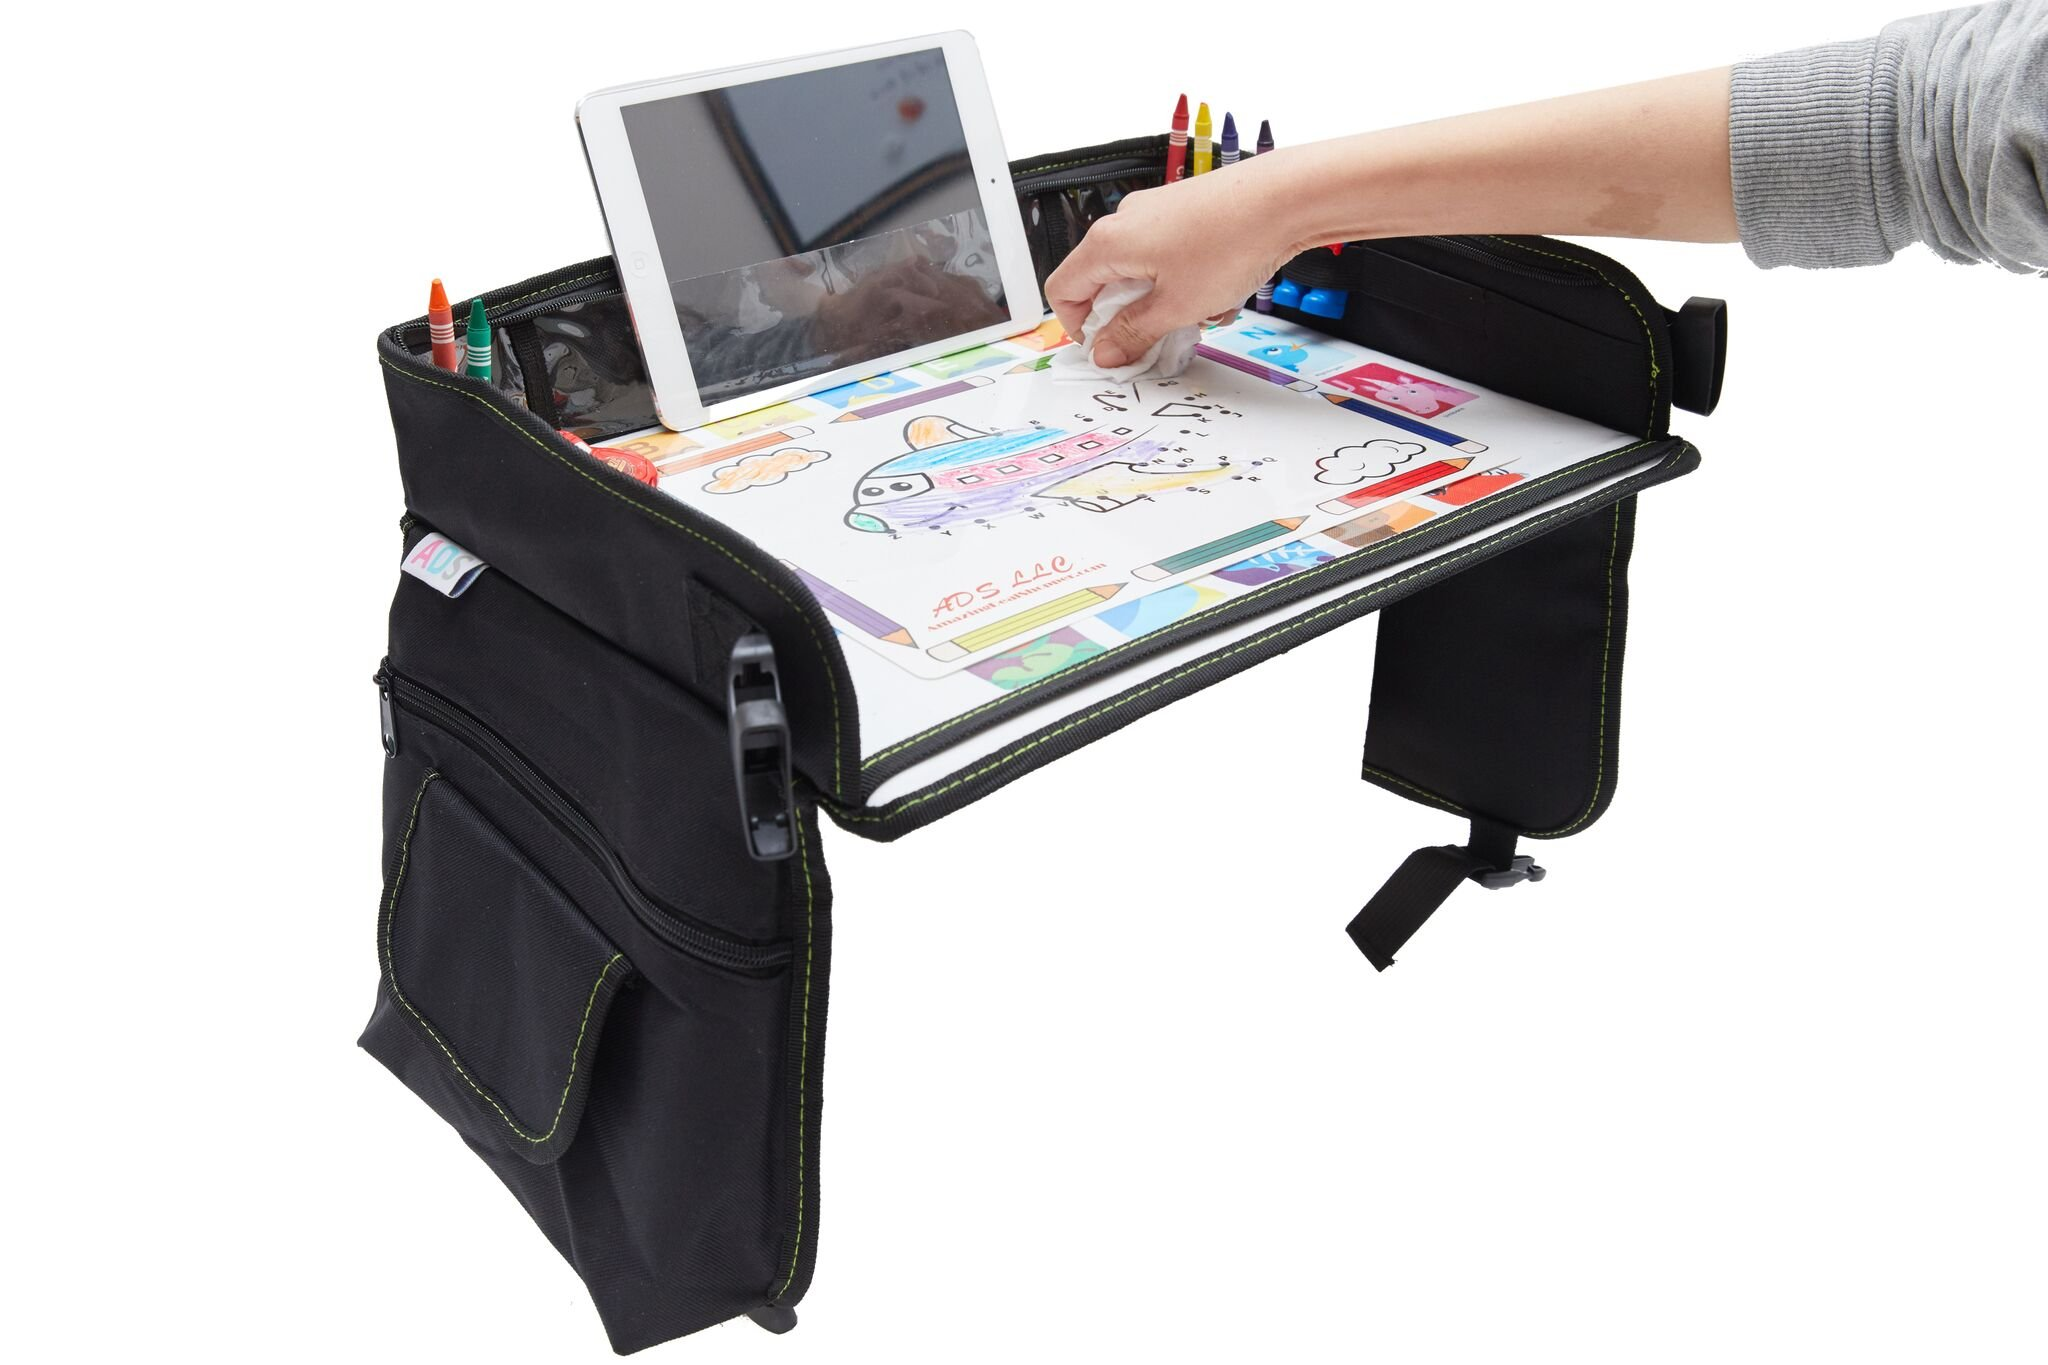 Kids Travel Tray Bag with Erasable Surface & Tablet Holder/Children Play Tray/Stroller Tray Organizer - Waterproof, Sturdy surface & Mesh Pockets + GIFT 6 Crayons & Drawing Activities